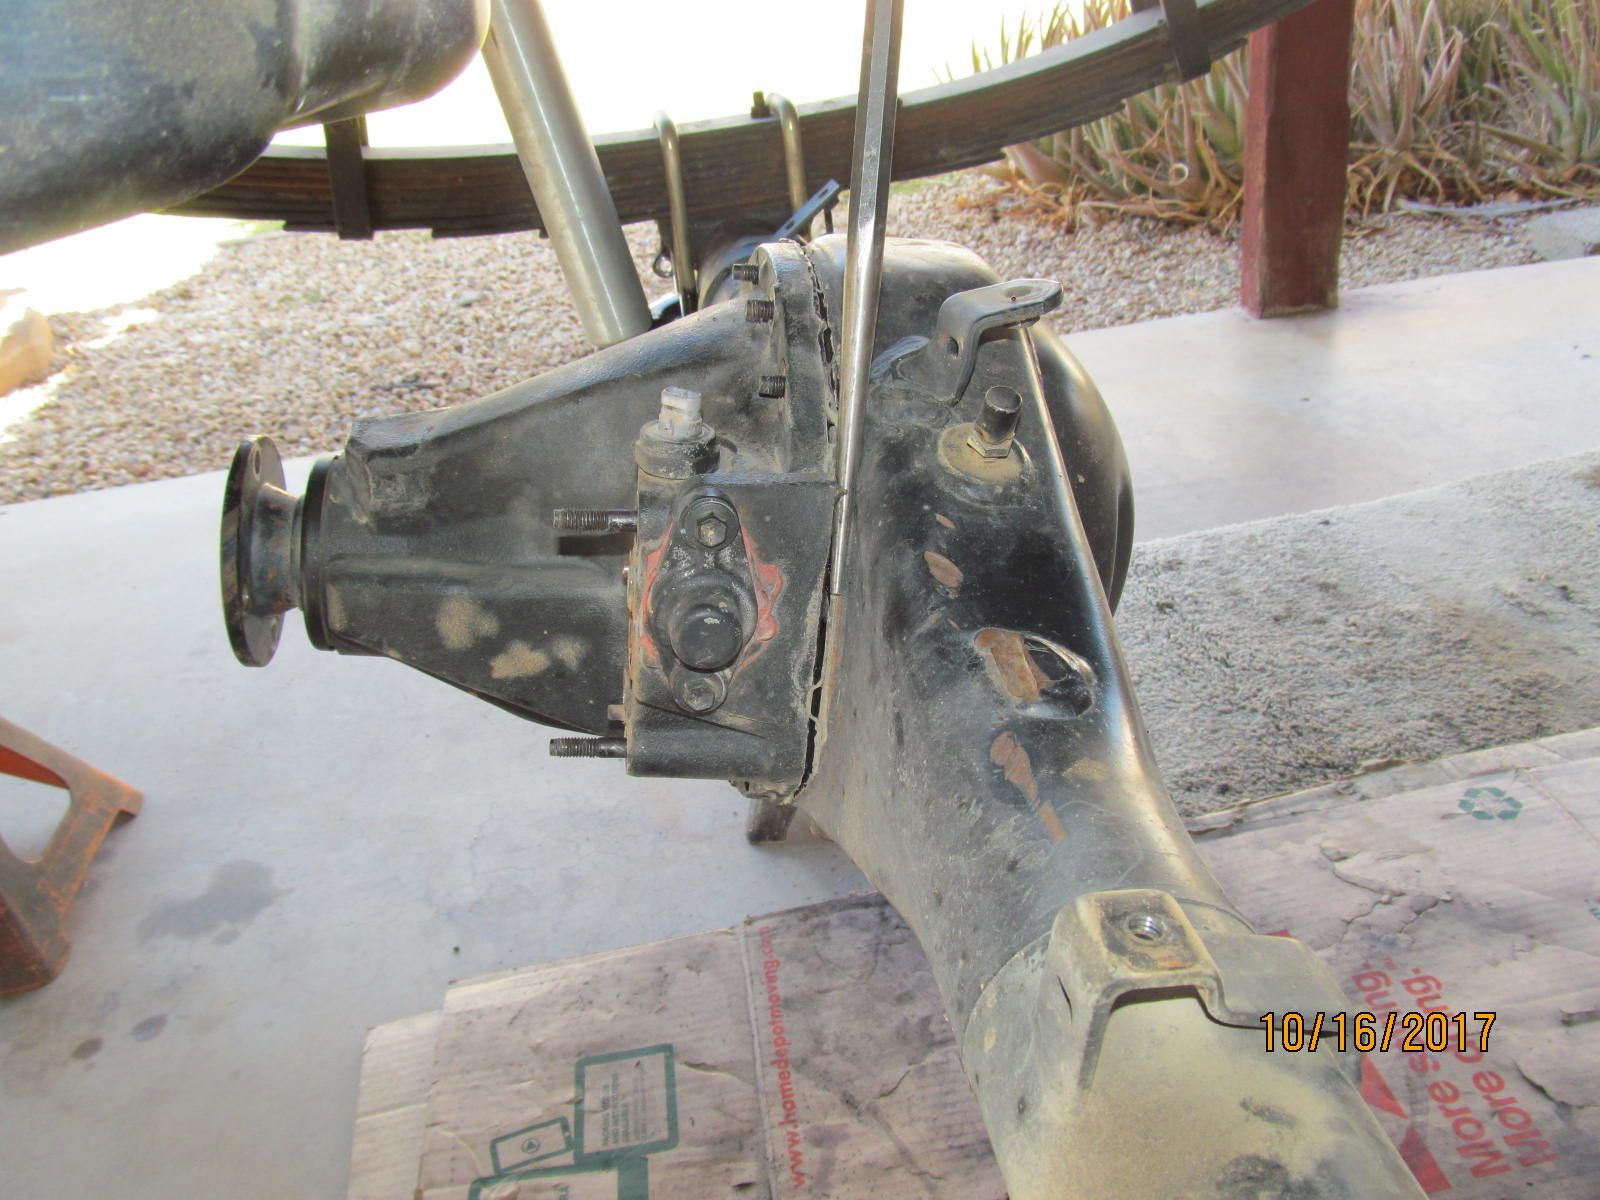 SAS FJ60 with axle housing flip and front shackle for my